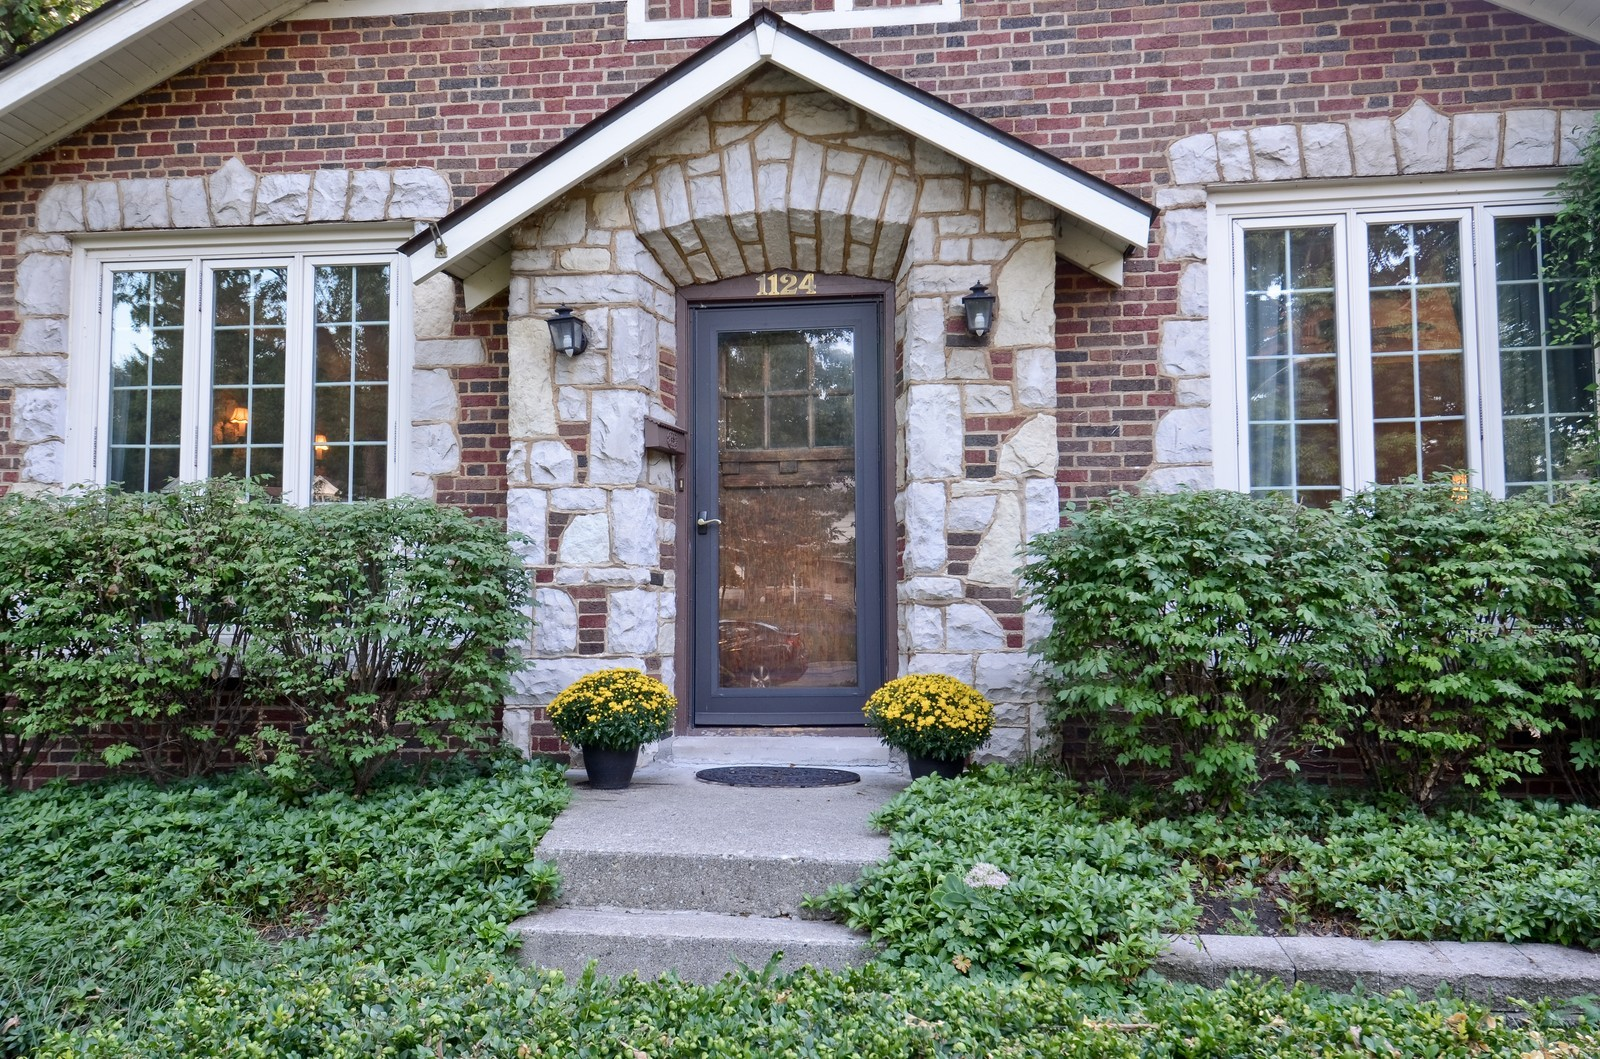 Real Estate Photography - 1124 Webster Ave, Wheaton, IL, 60187 - Front view